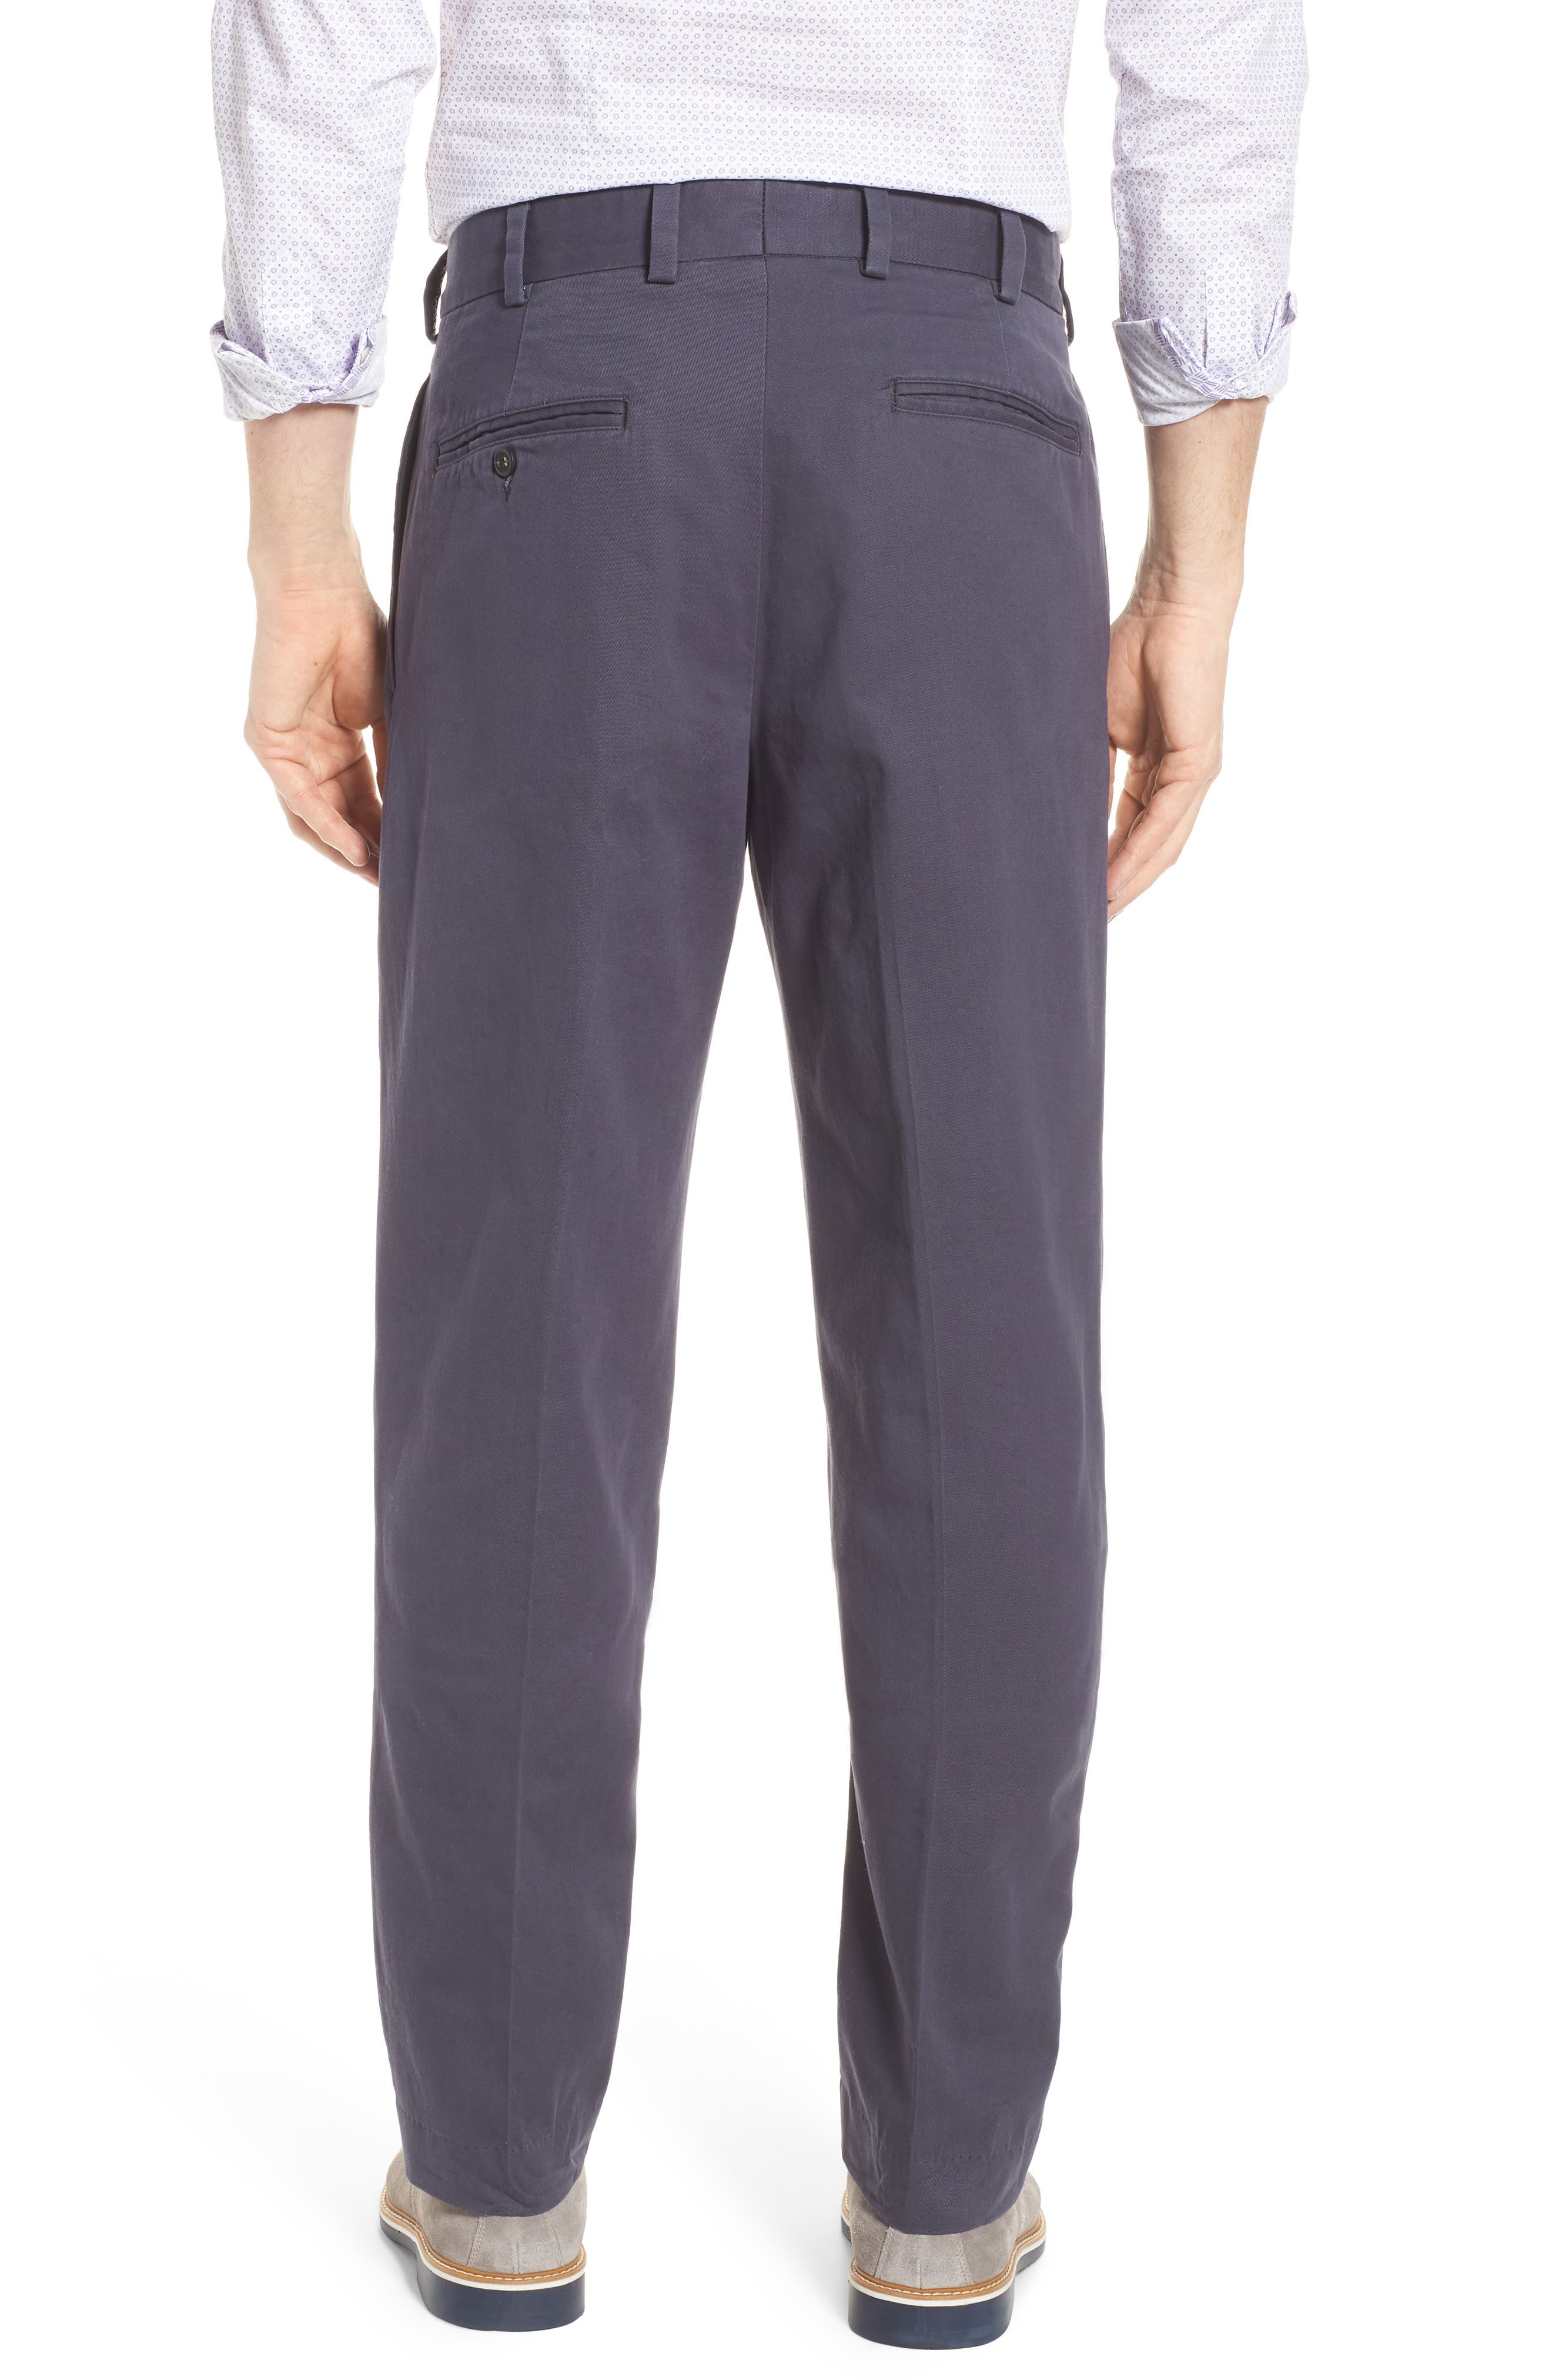 M2 Classic Fit Vintage Twill Pleated Pants,                             Alternate thumbnail 2, color,                             Navy